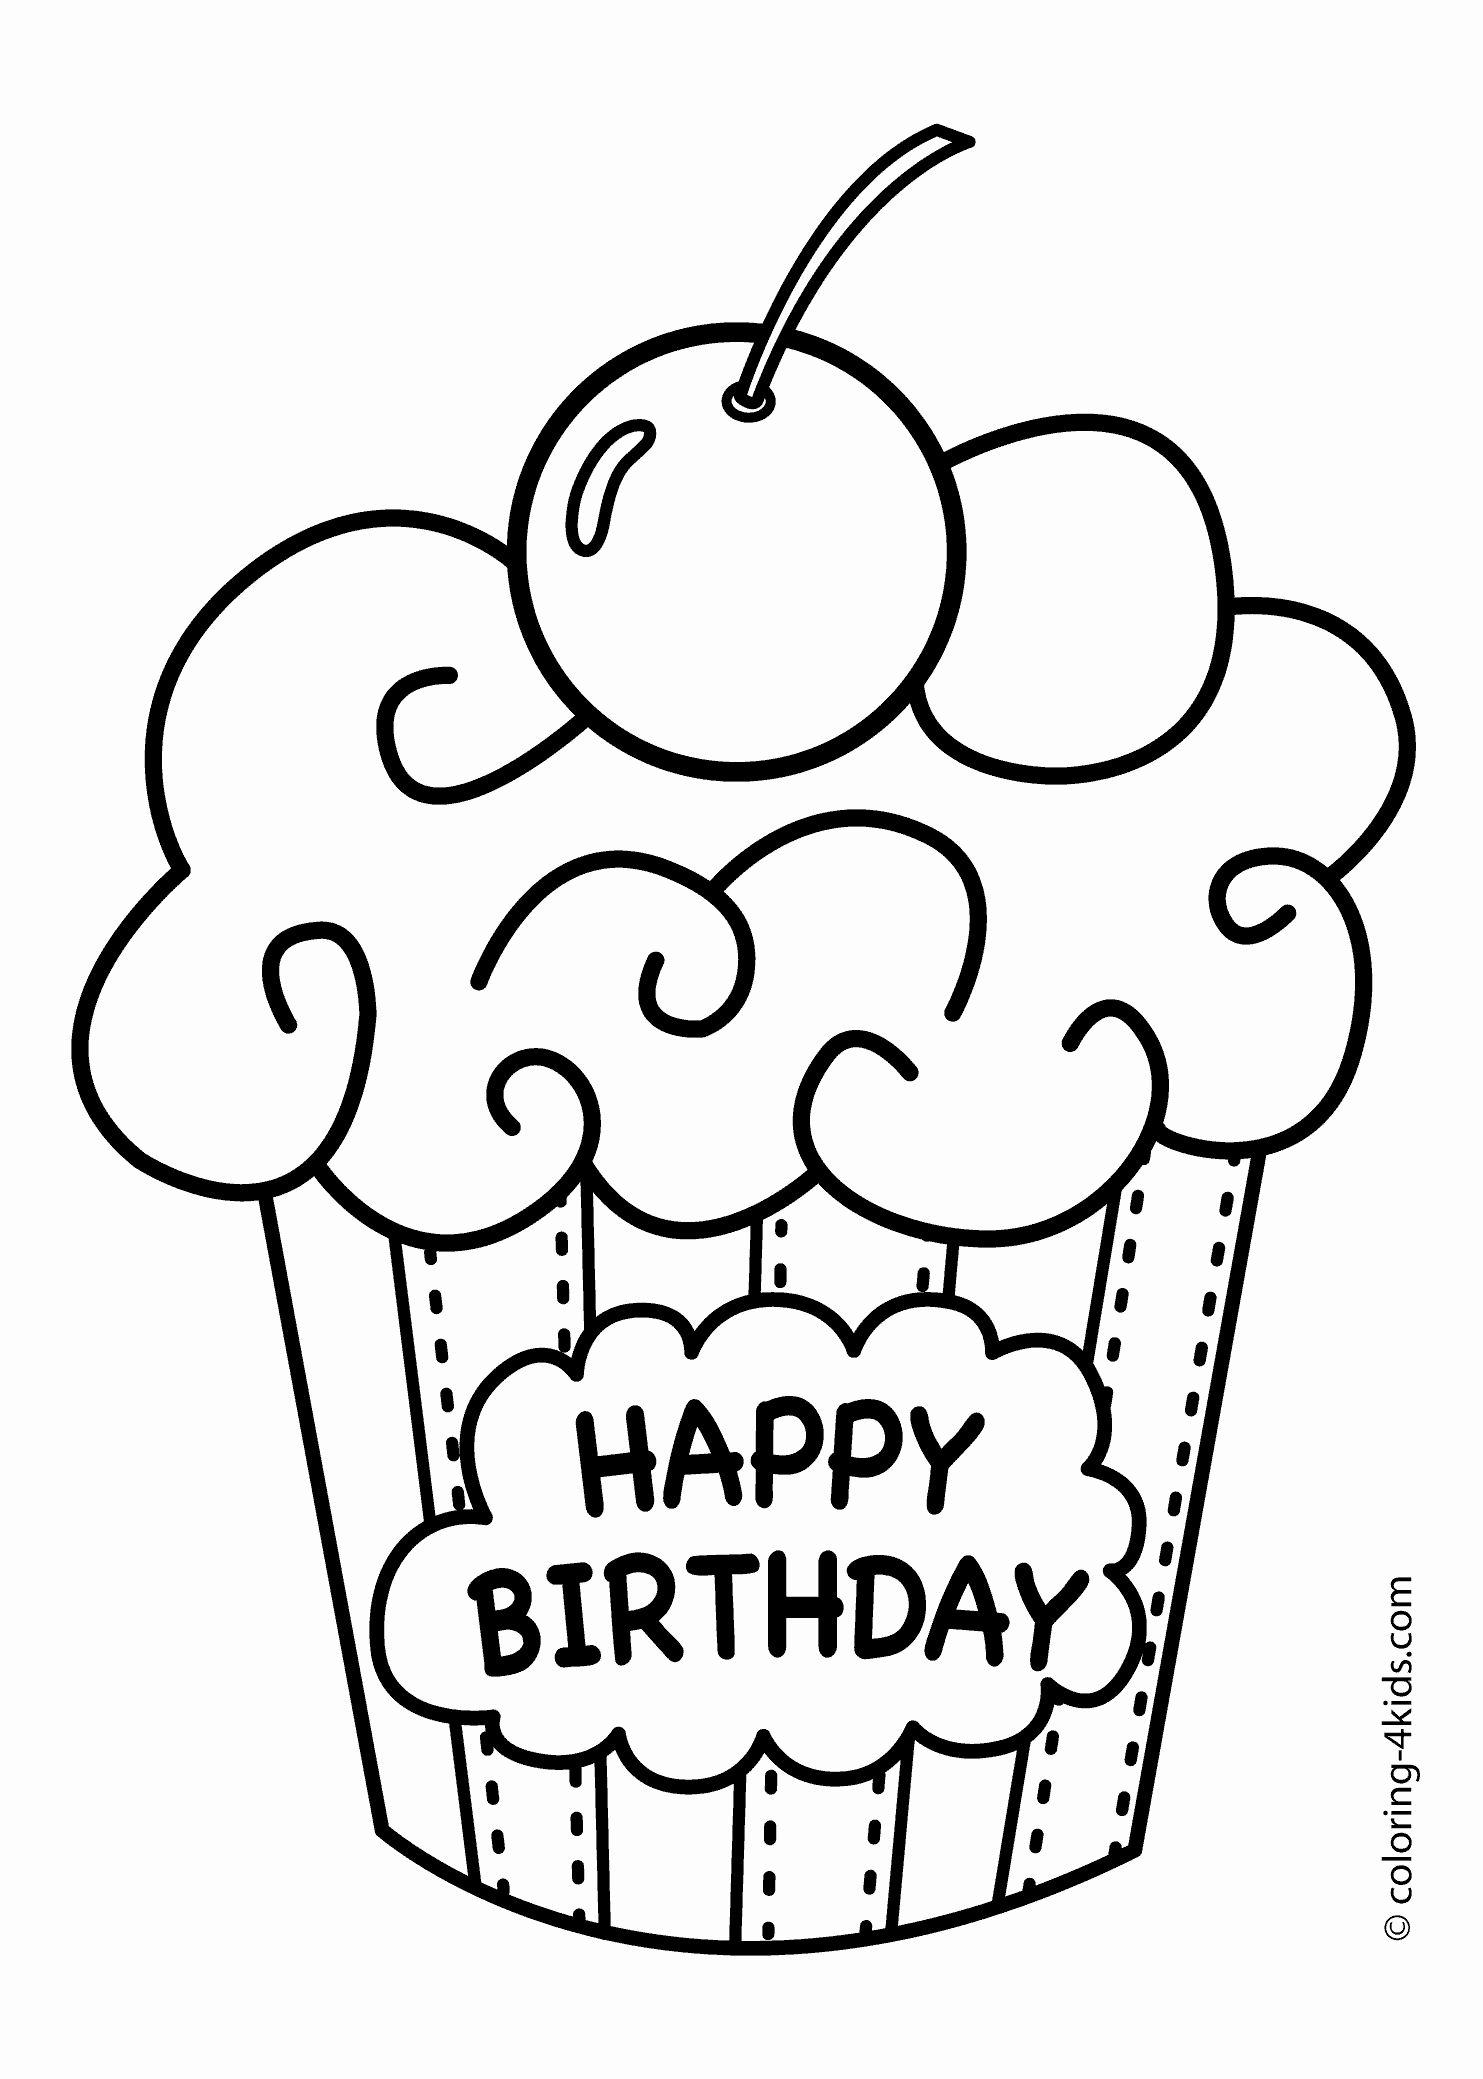 Happy Birthday Coloring Page Luxury Cake Happy Birthday Party Coloring Pages M In 2020 Happy Birthday Coloring Pages Happy Birthday Printable Birthday Coloring Pages